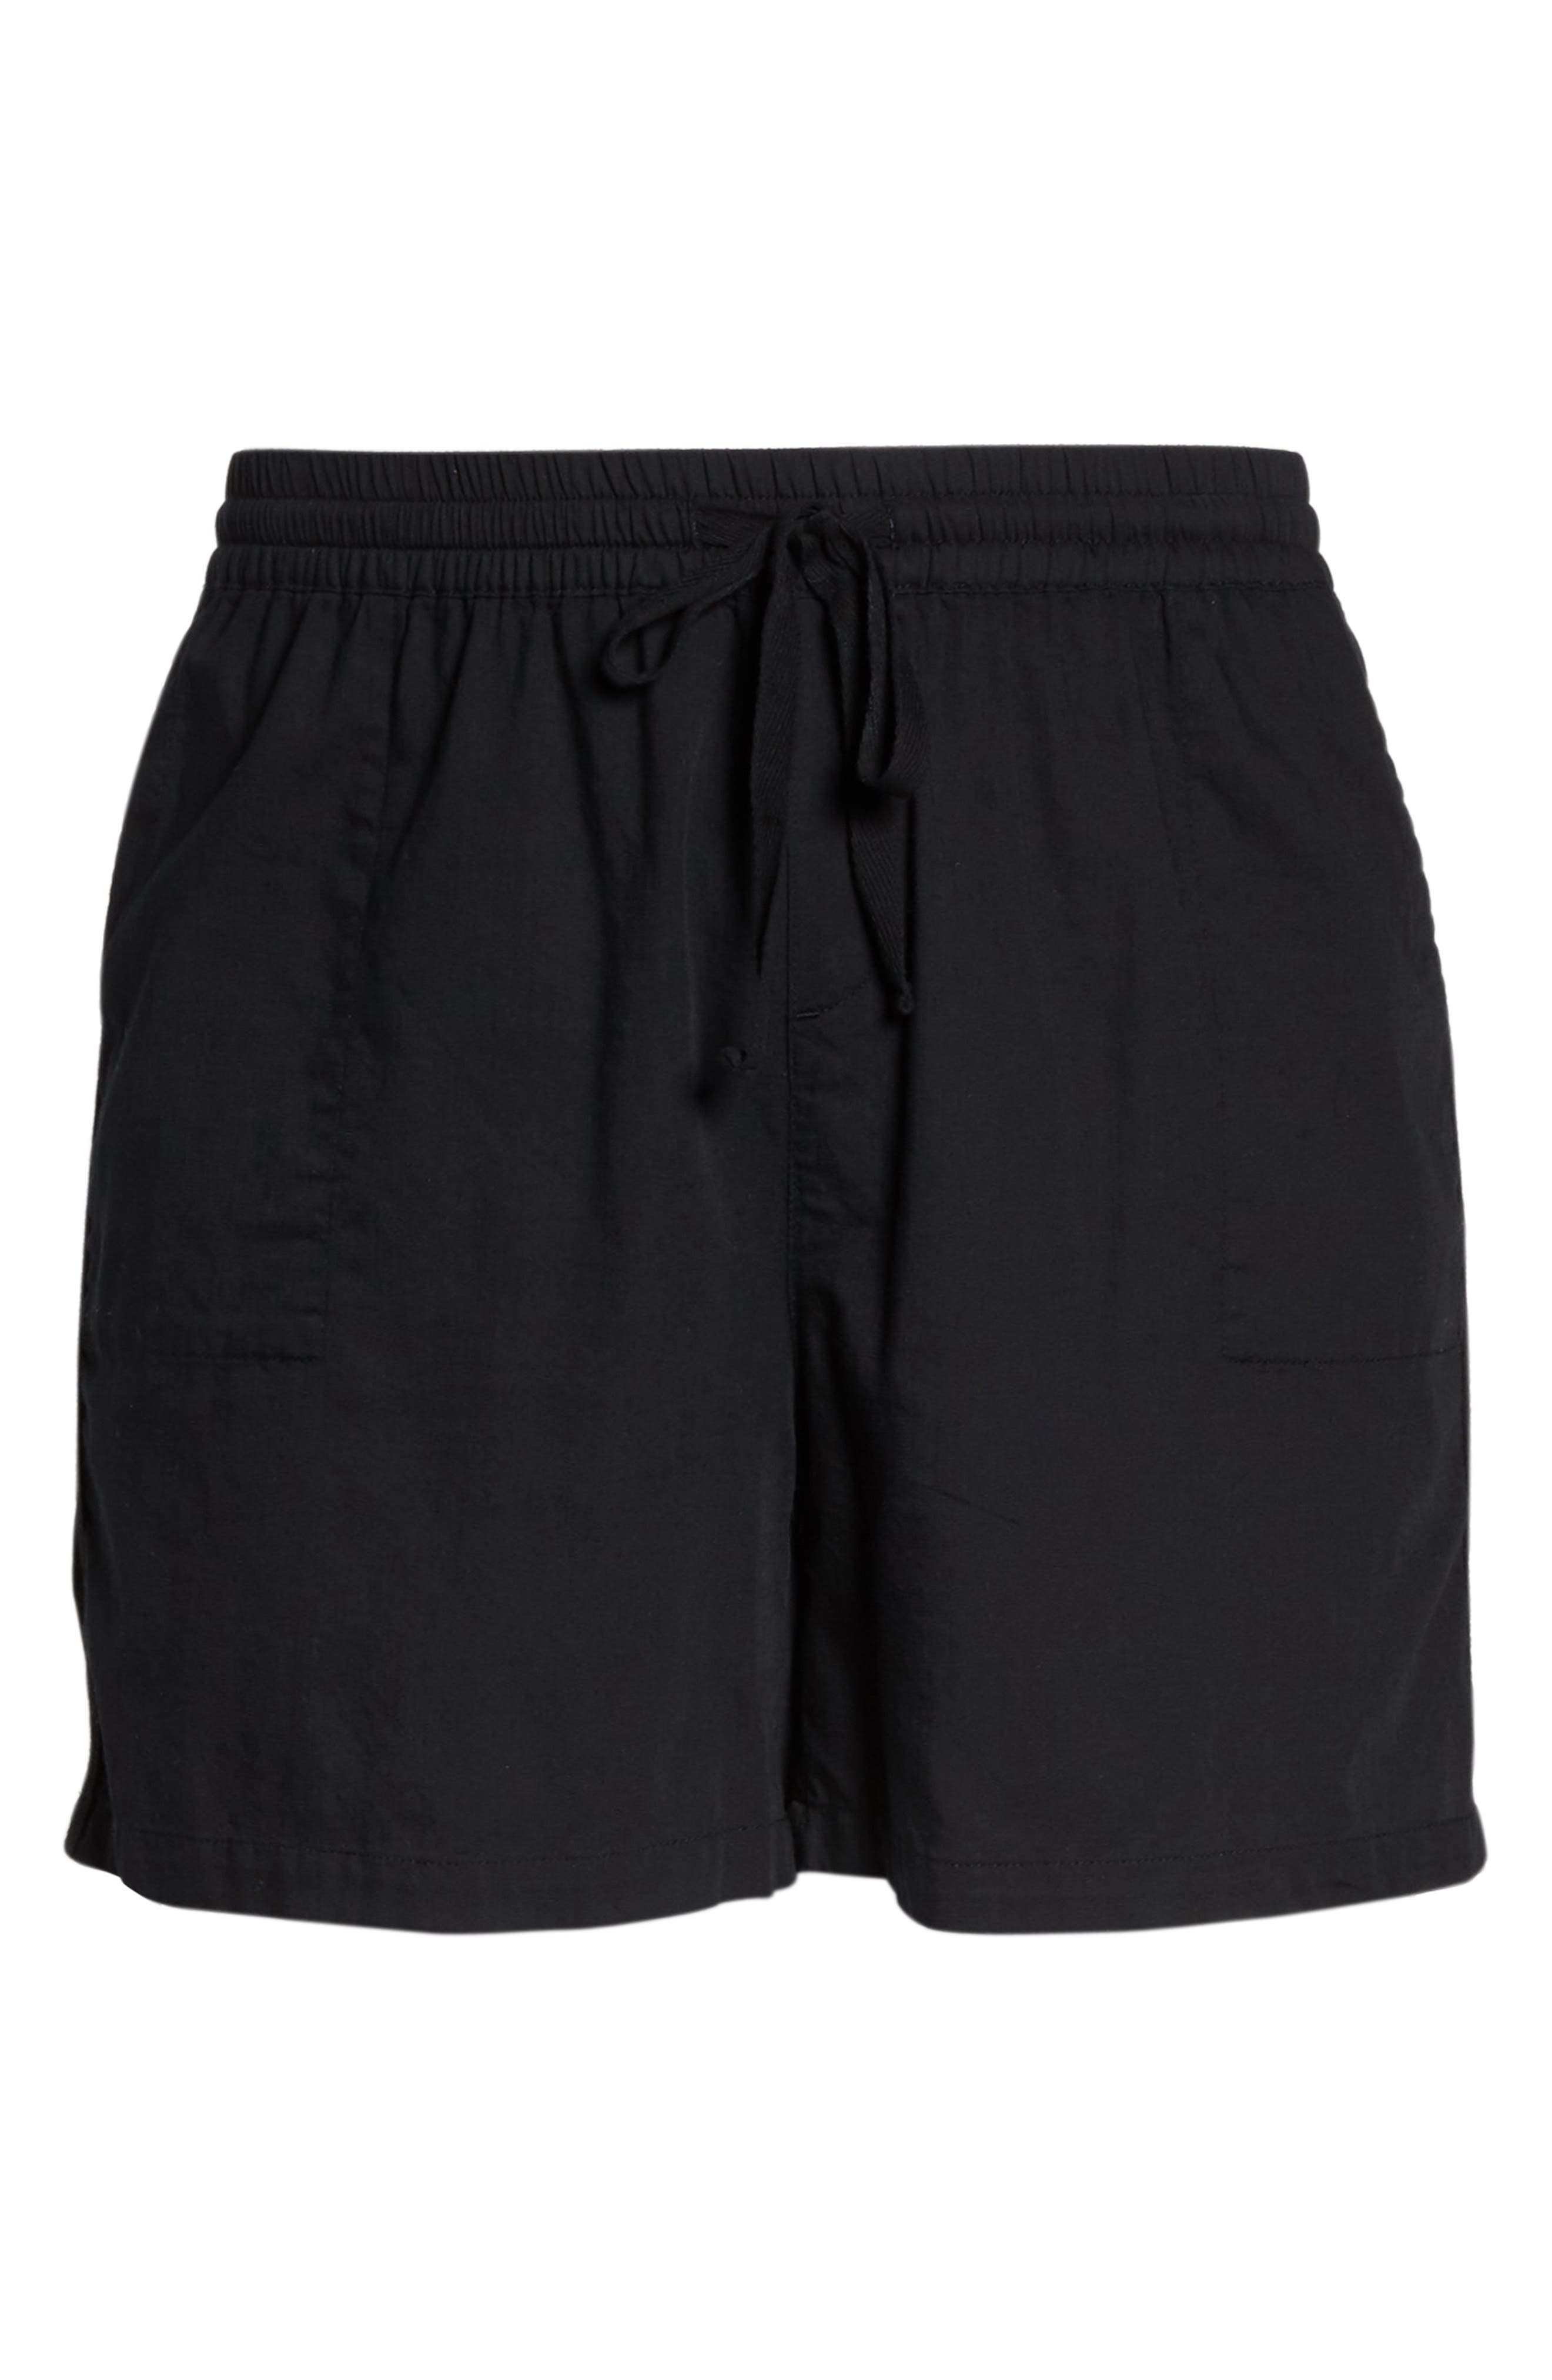 Pull-On Twill Shorts,                             Alternate thumbnail 7, color,                             001